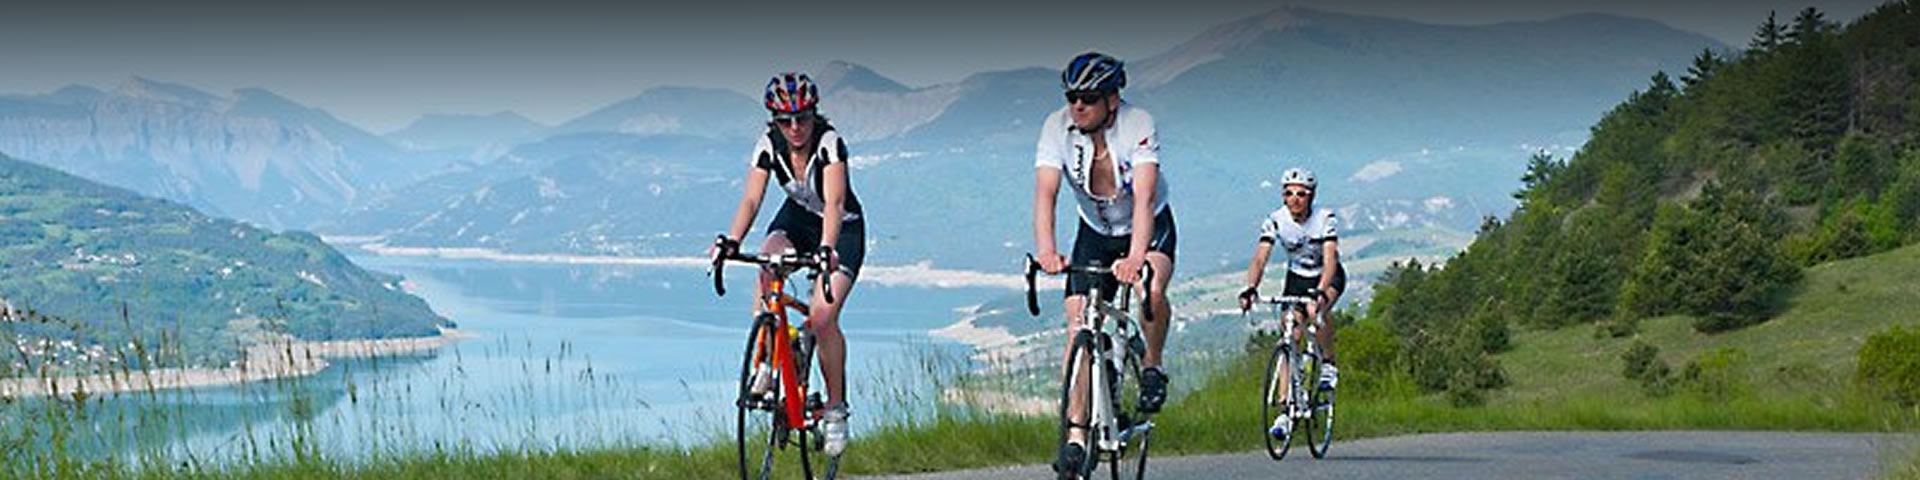 Road cycling holiday accommodation in the Southern French Alps